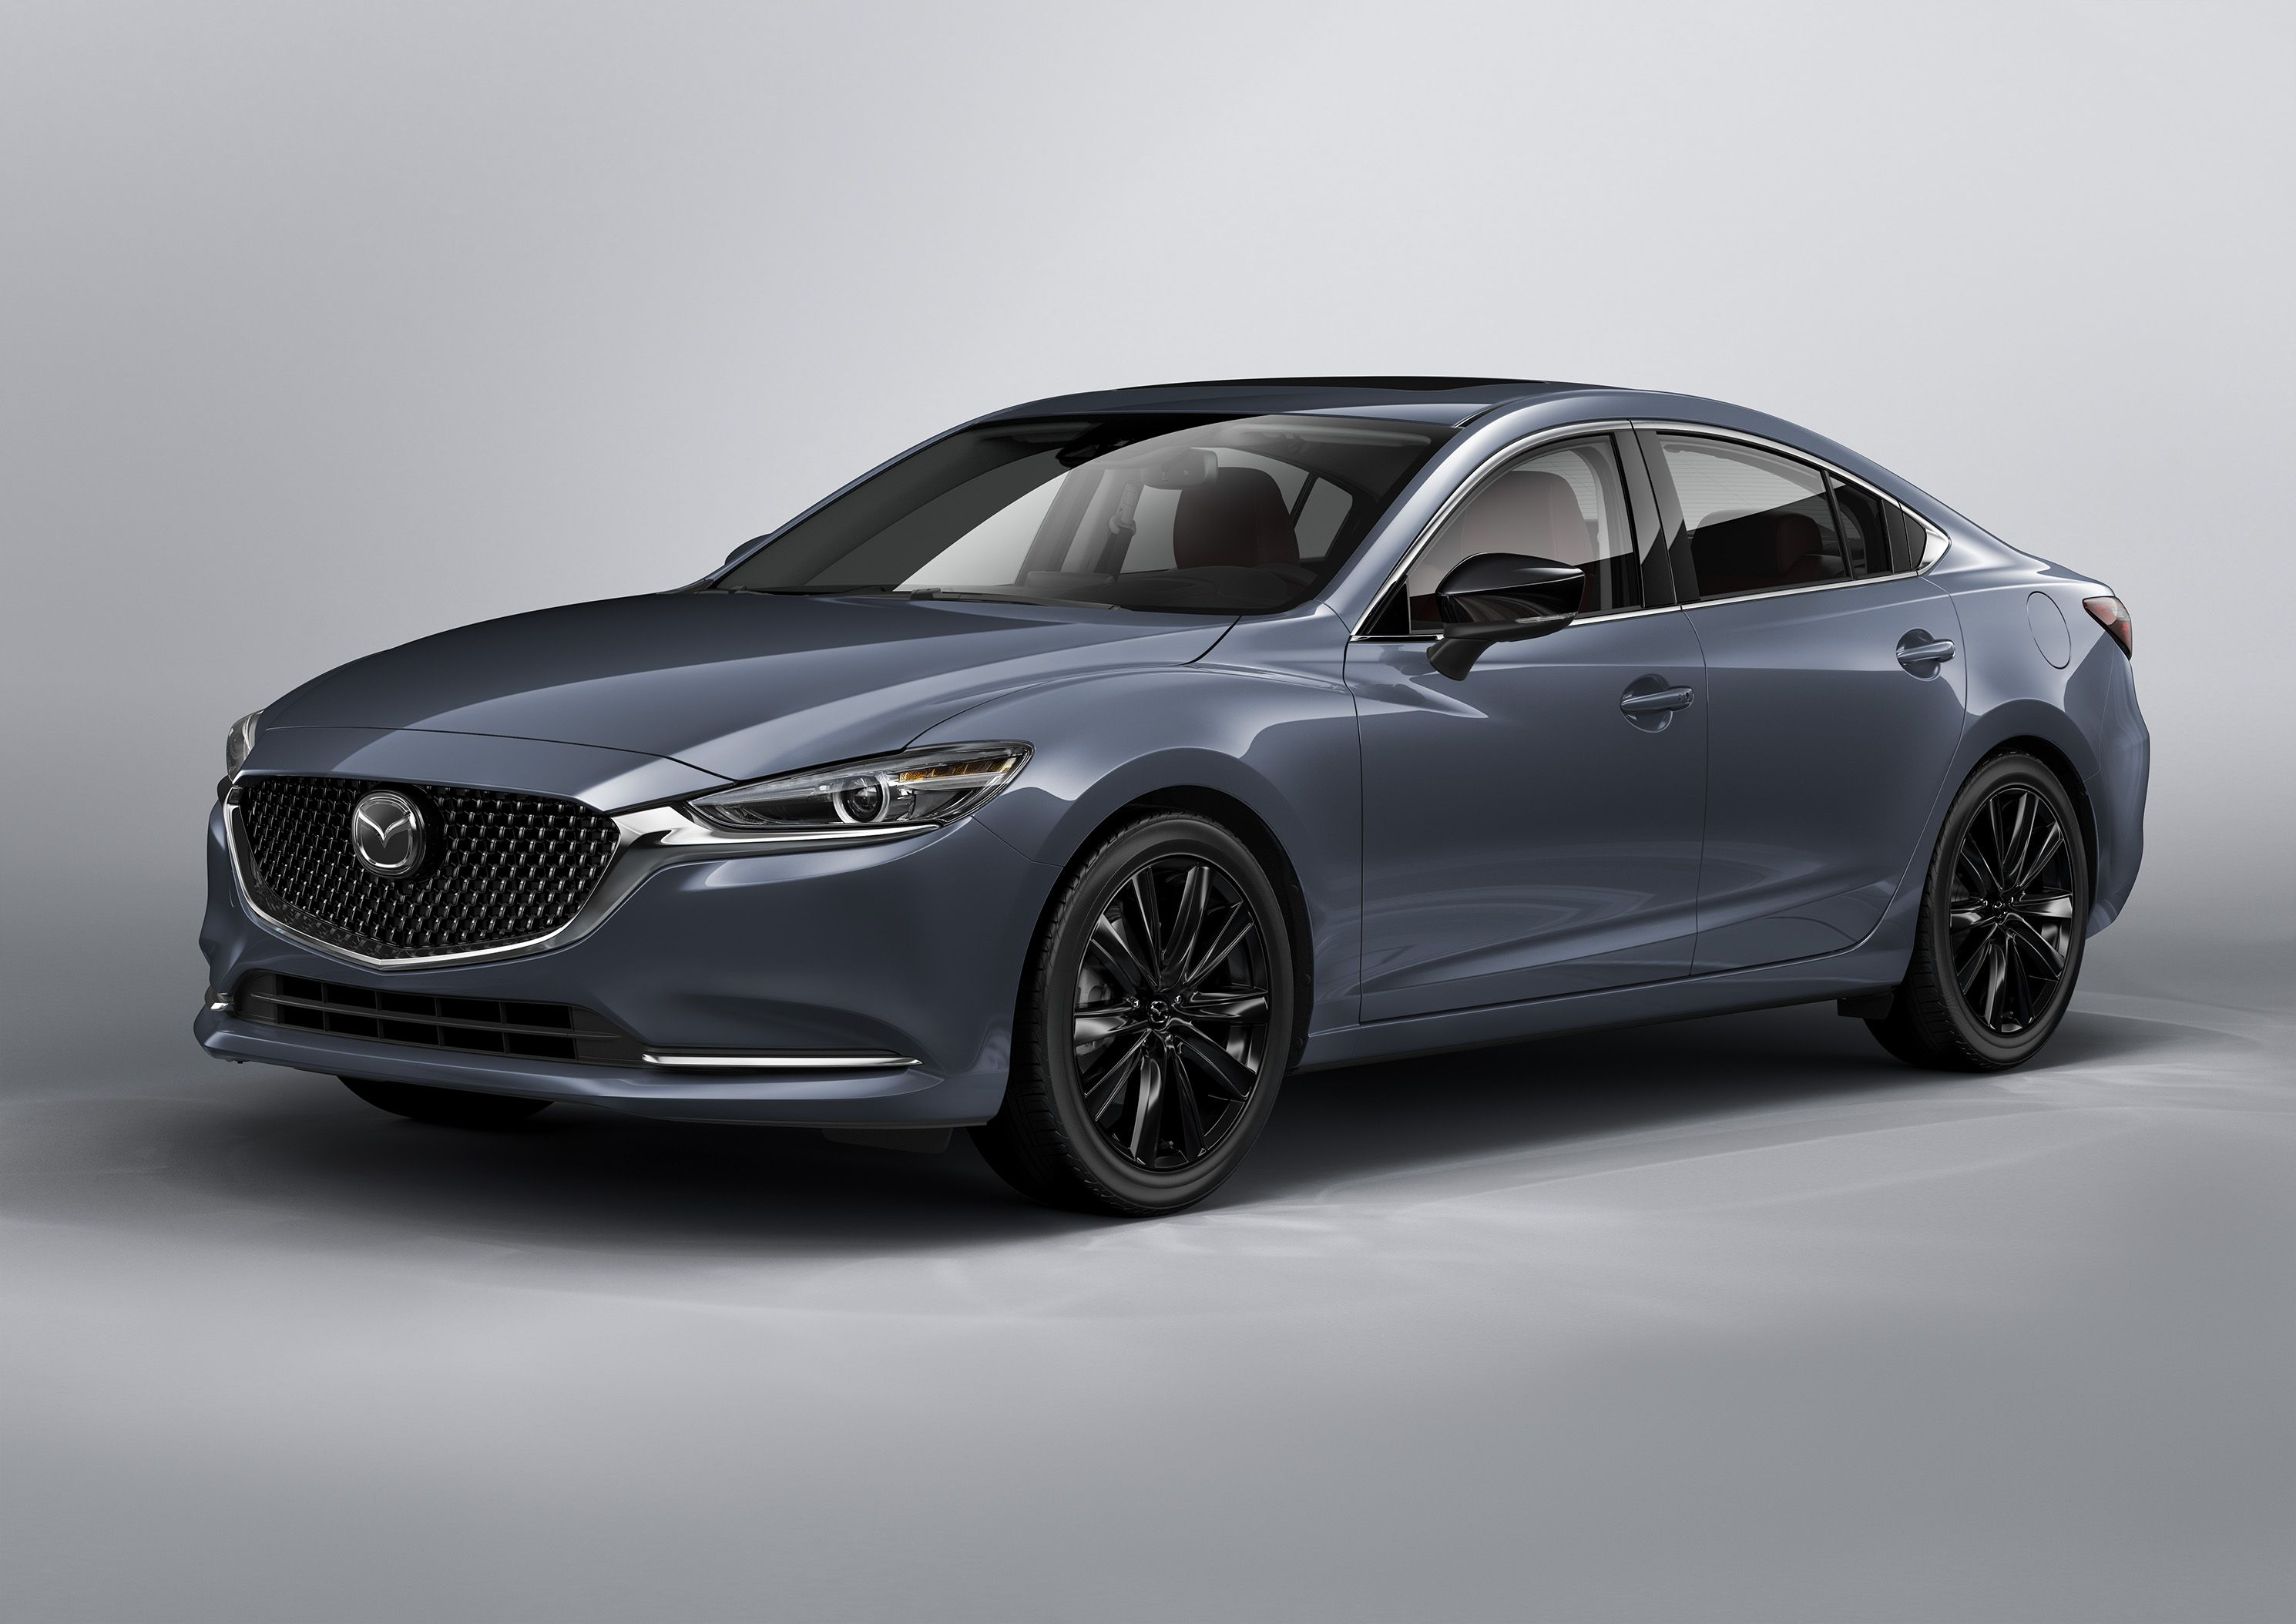 2021 Mazda 6 Coupe Redesign and Concept